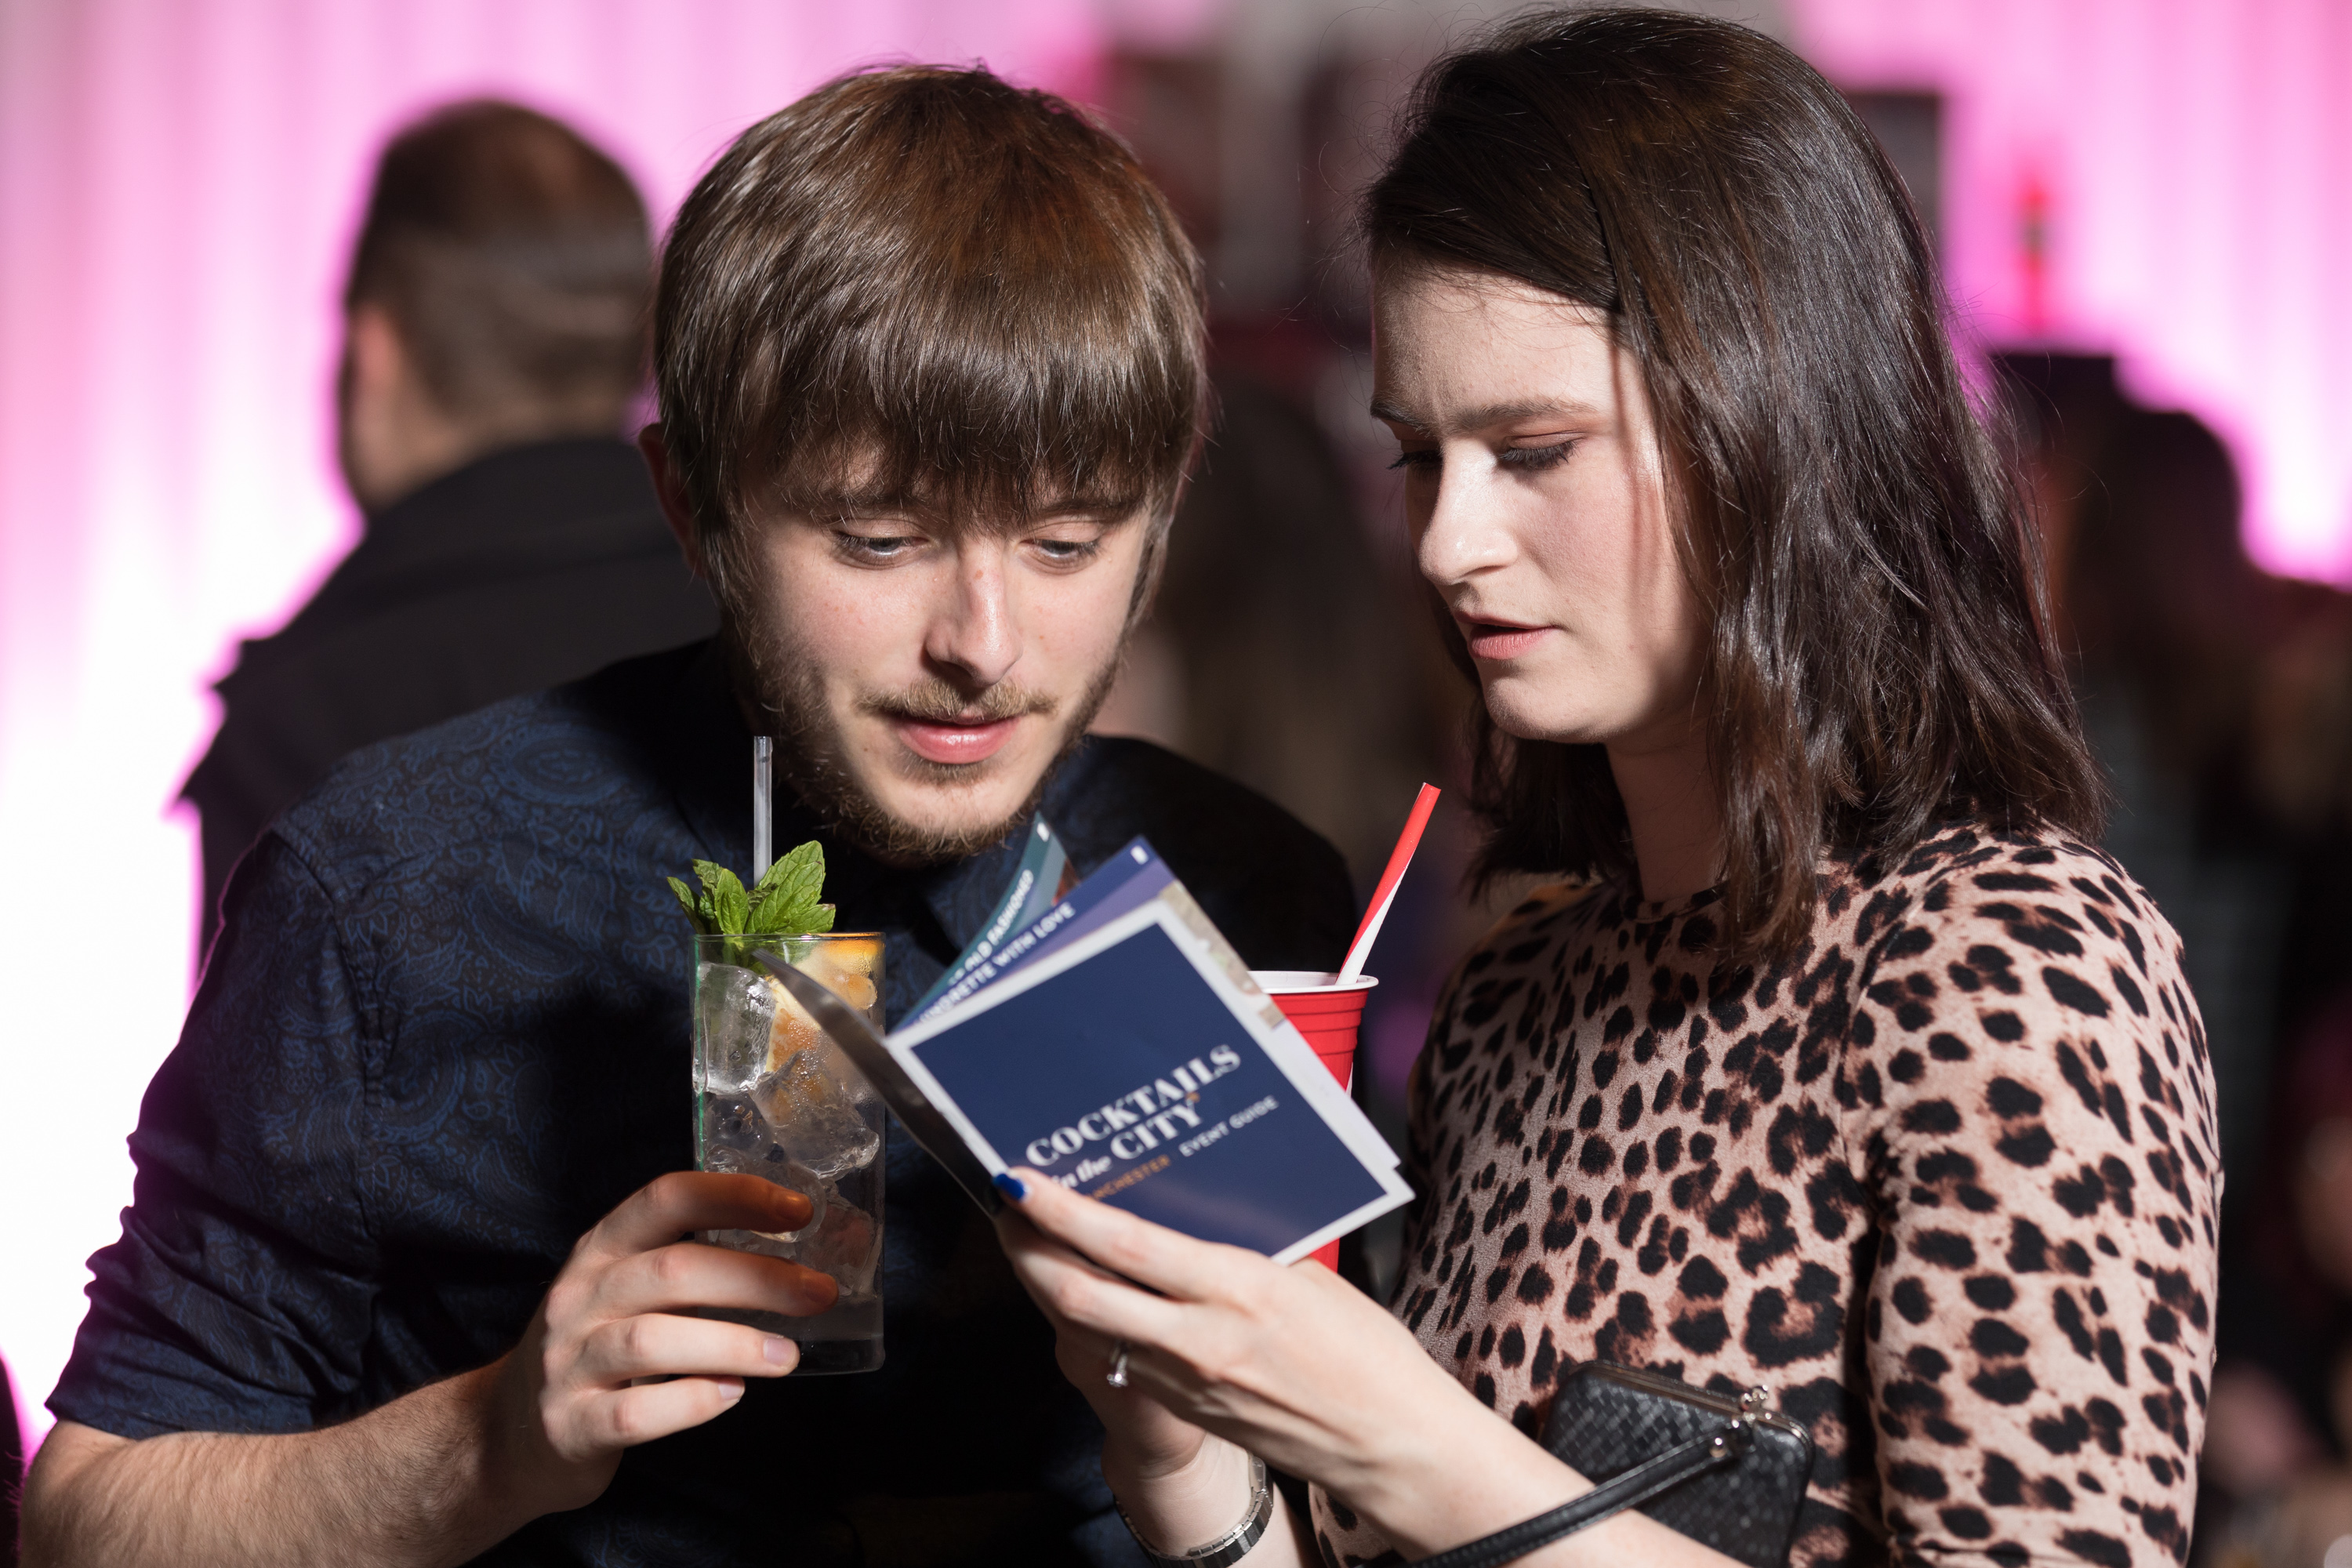 Cocktails in the City Manchester 2018